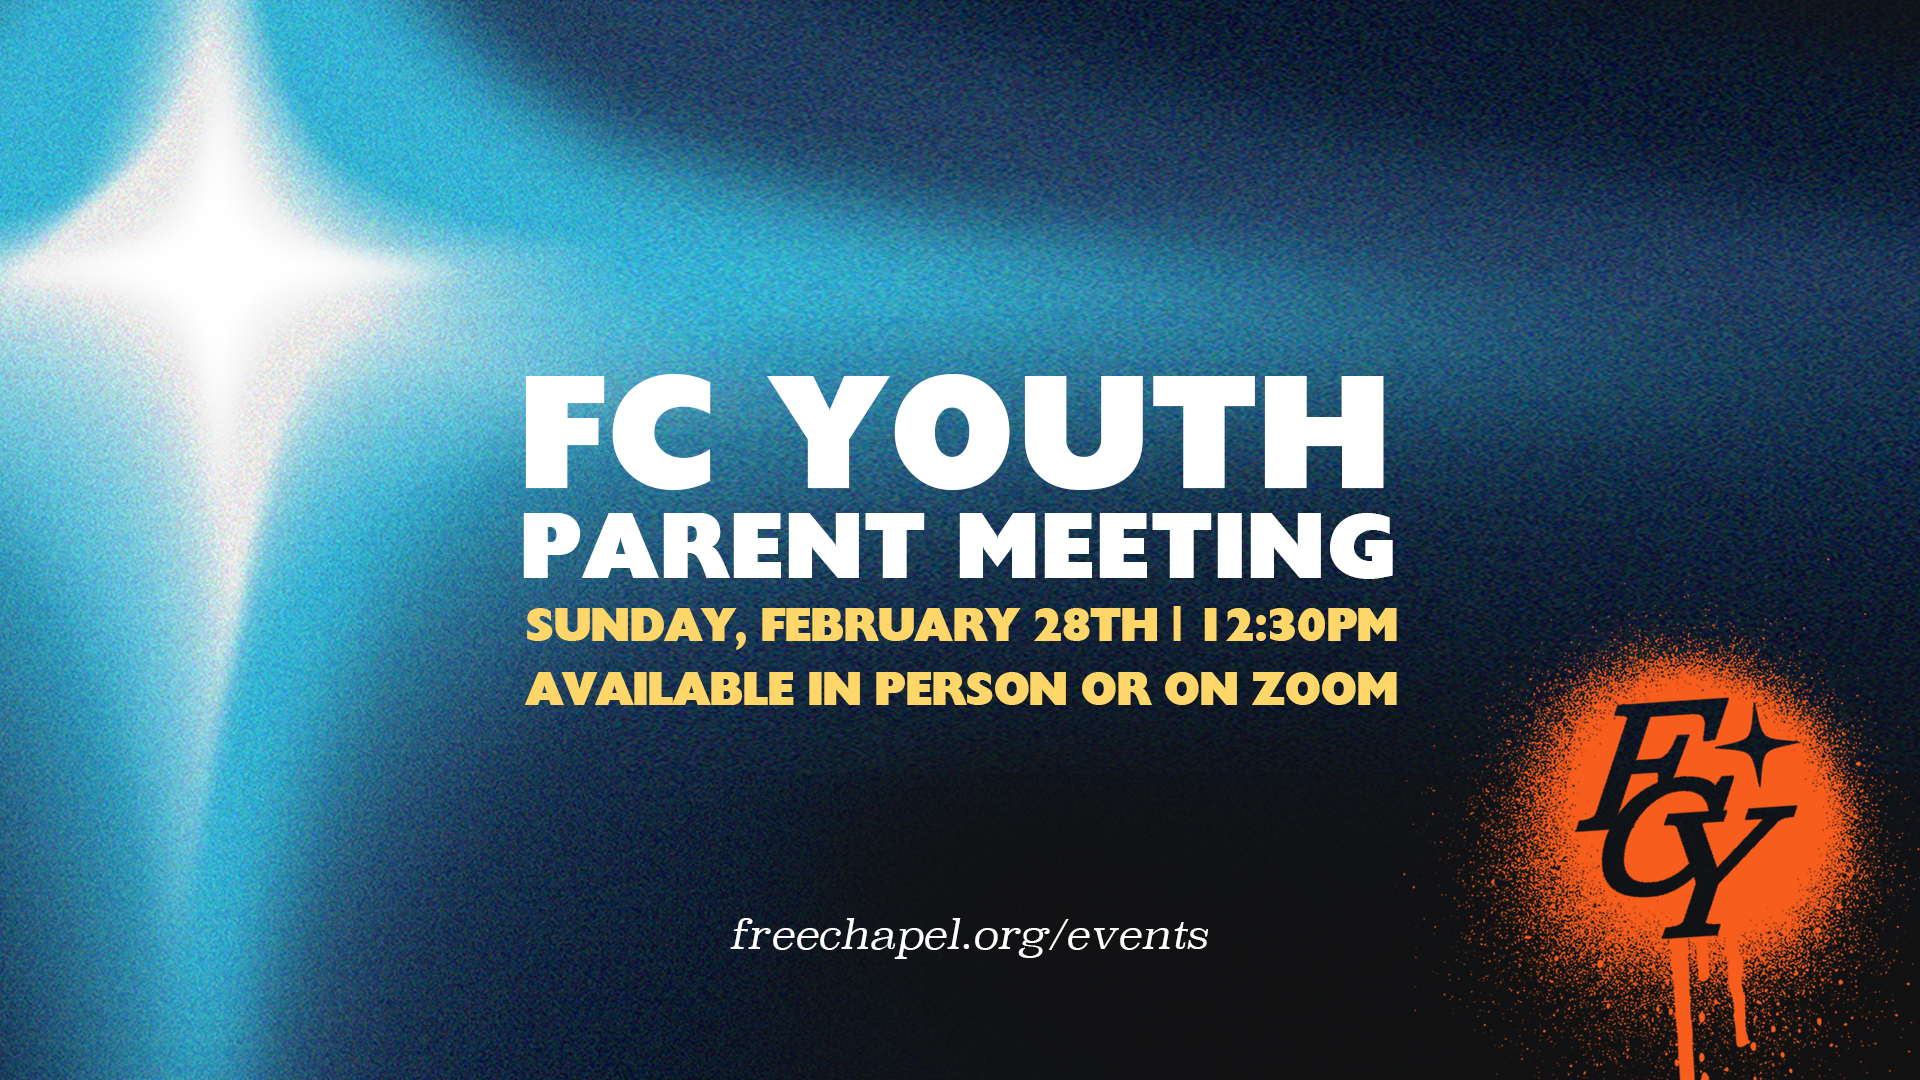 FC Youth Parent Meeting at the Braselton campus